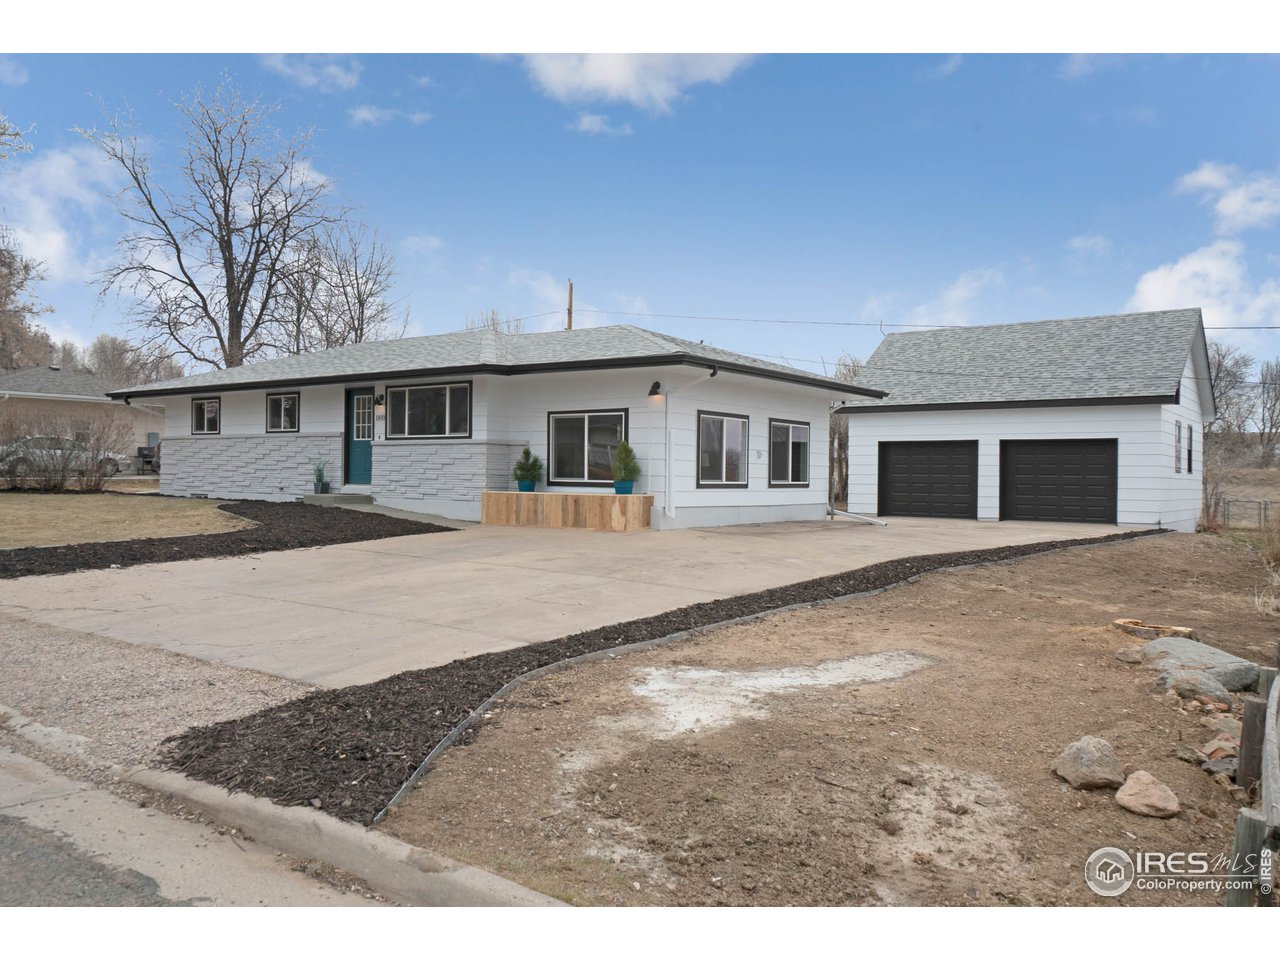 1810 Valley View Ln, Fort Collins CO 80524